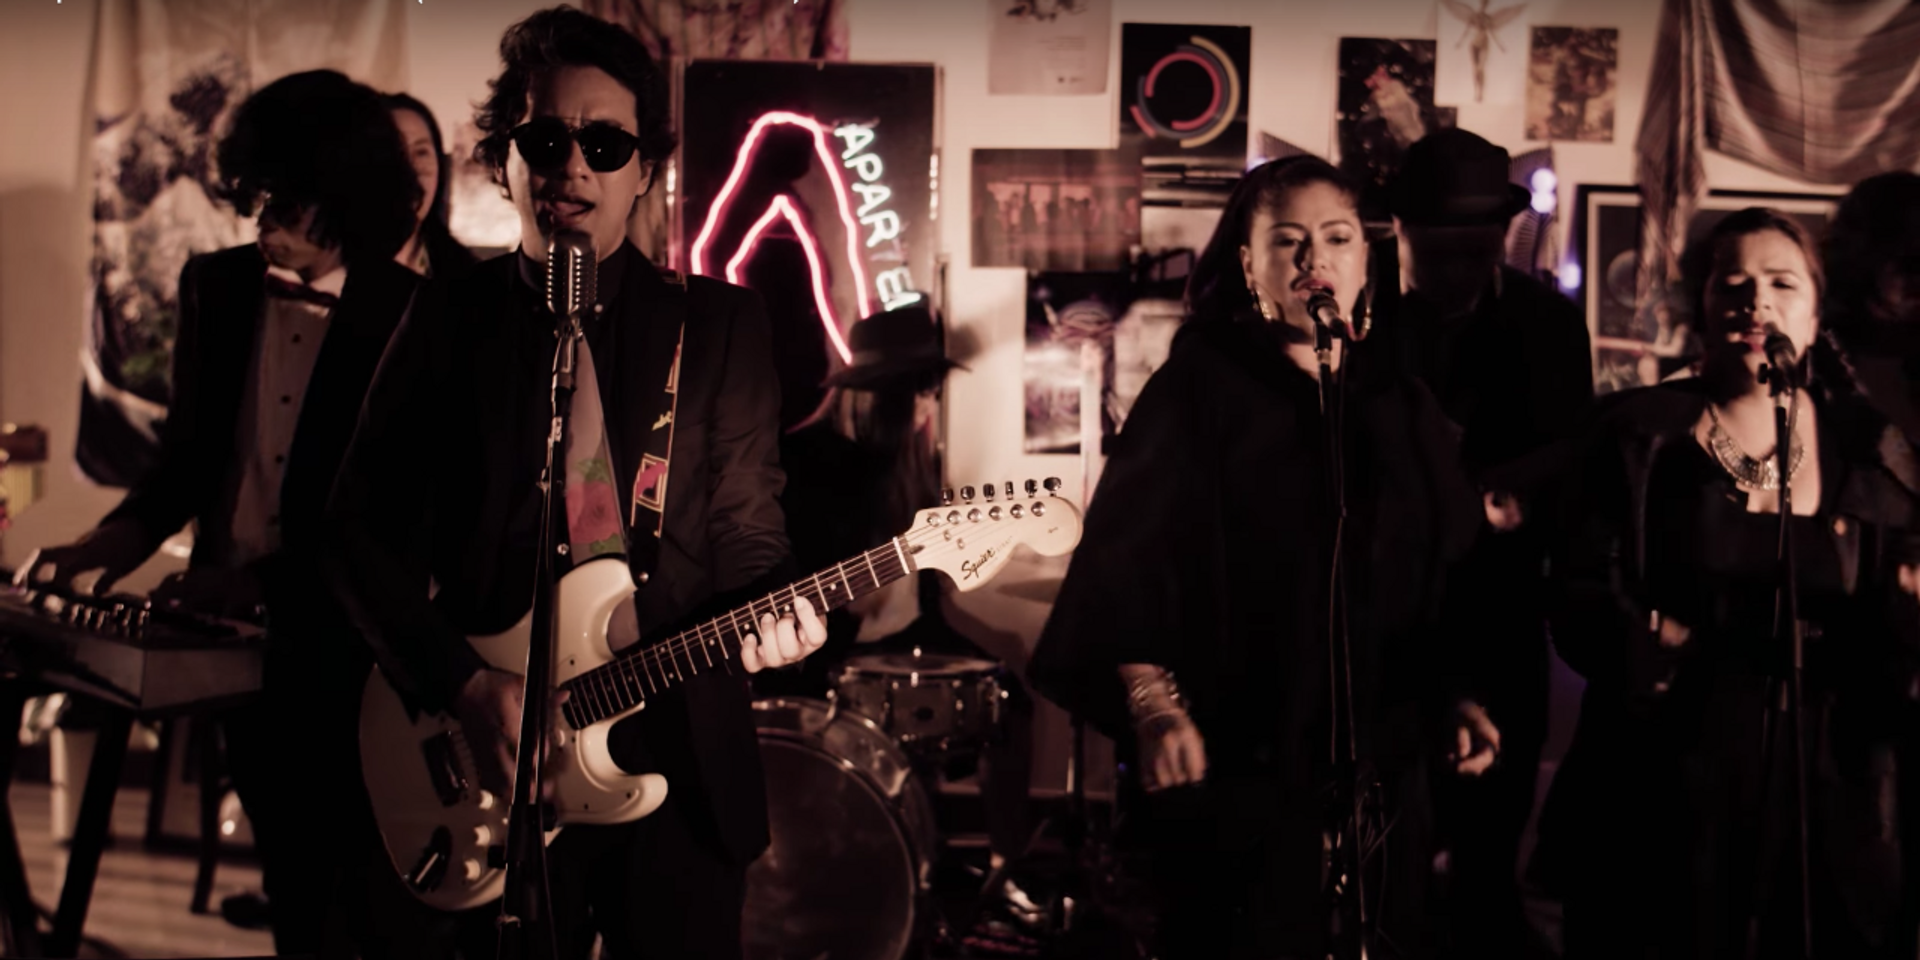 """WATCH: Apartel releases giallo-inspired music video for """"Sala sa Init"""""""